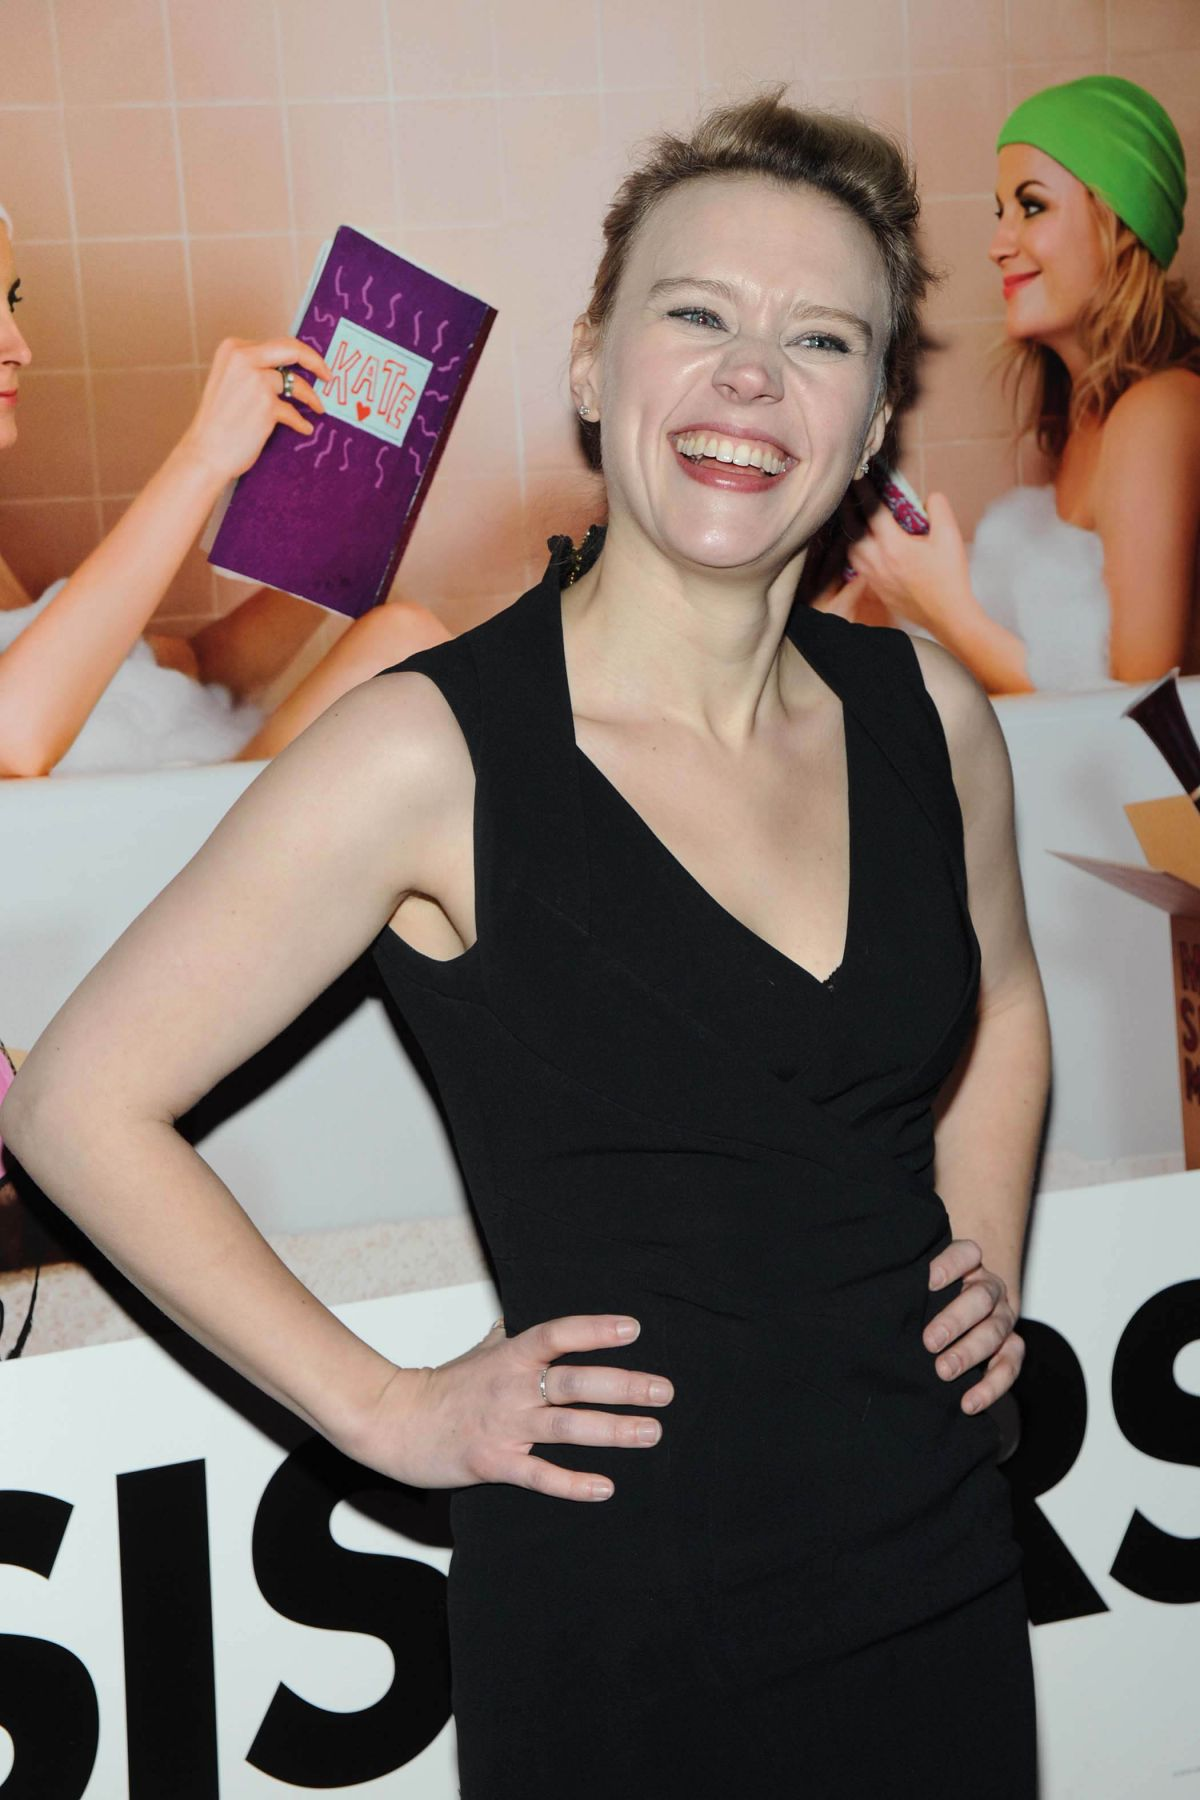 KATE MCKINNON at Sisters Premiere in New York 12/08/2015